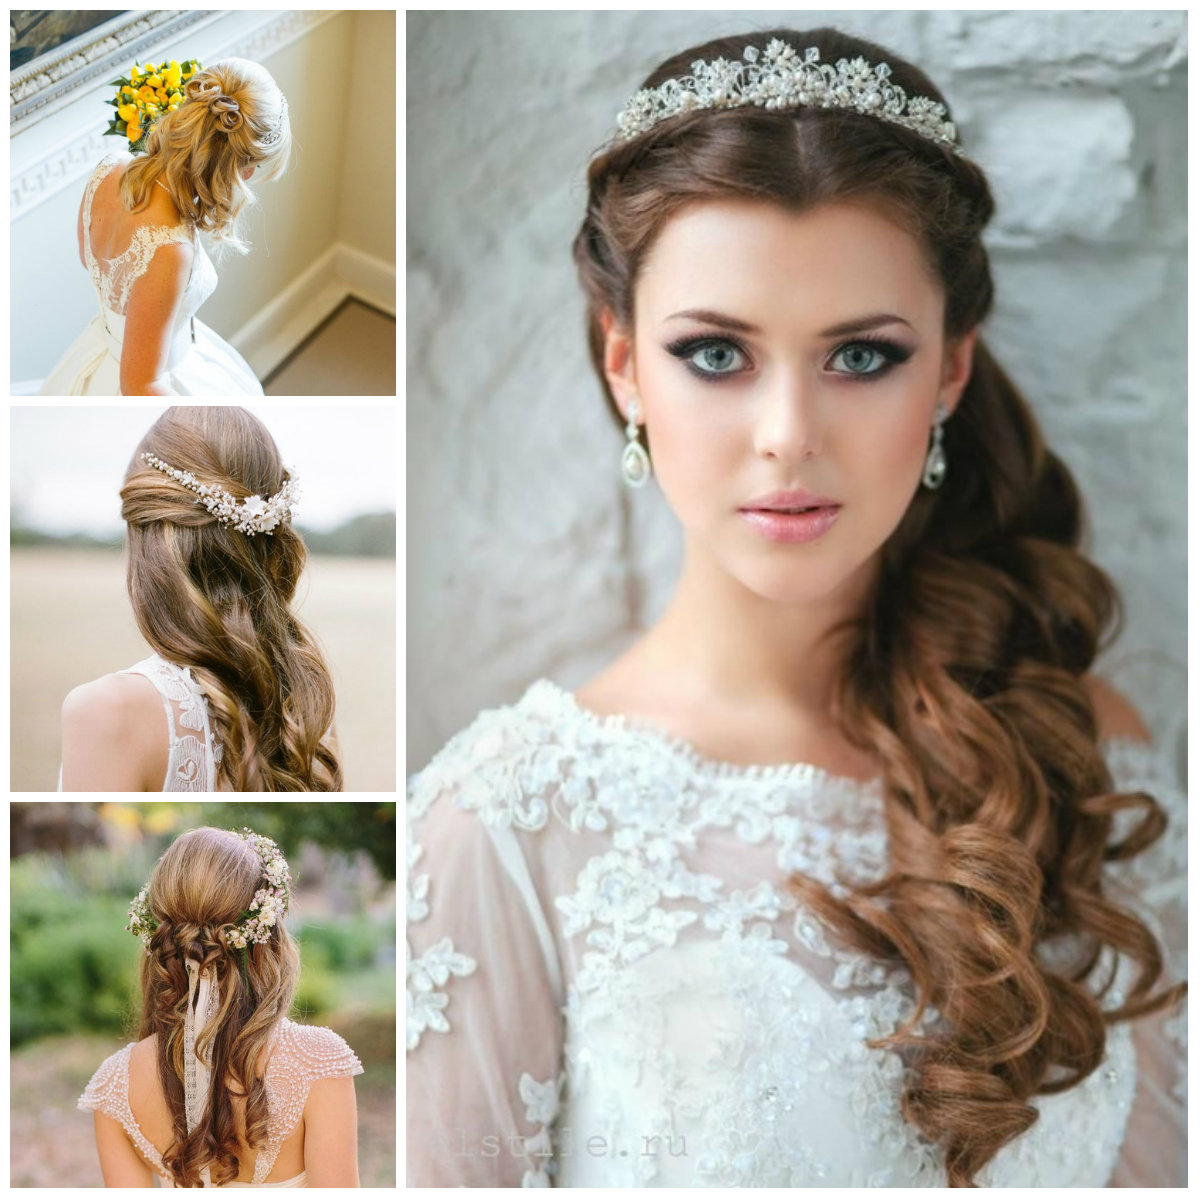 Wedding Styles: Wedding Half Updo Hairstyles For 2017